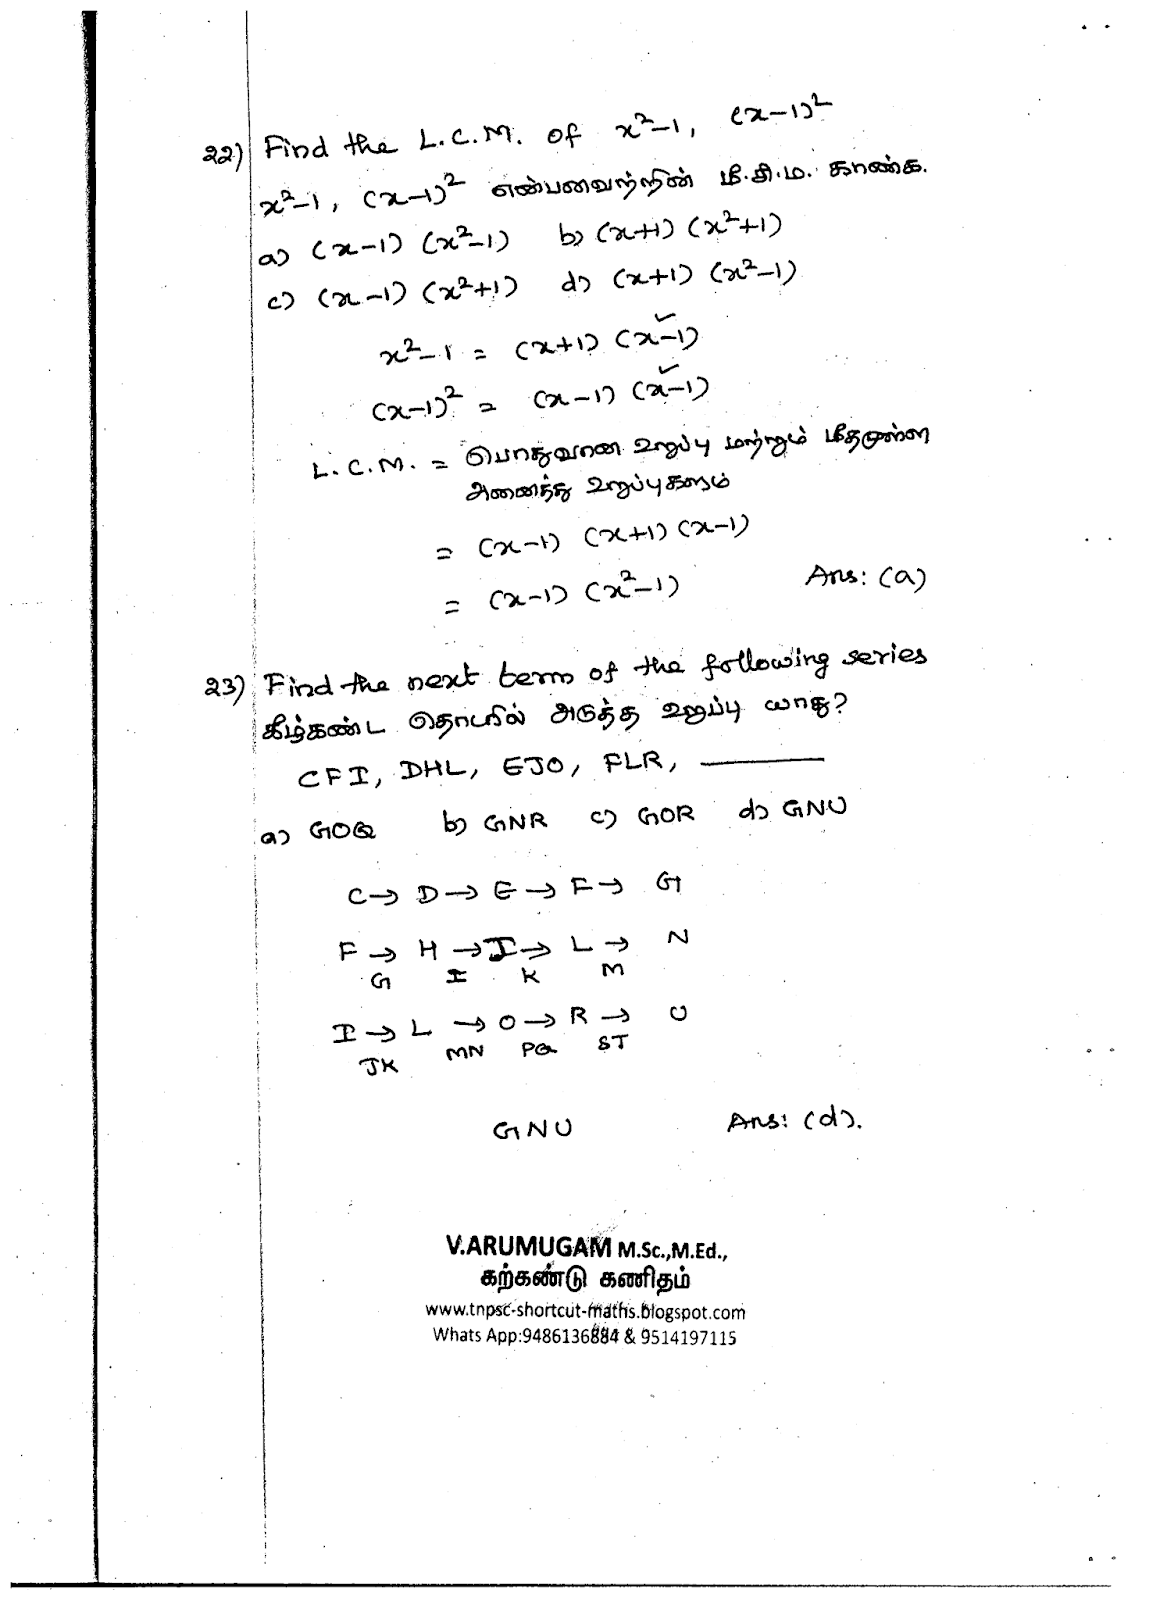 TNPSC – 2019 - Project Officer in Tamil Nadu General Service and Psychologist in Tamil Nadu Jail Service EXAM - EXAM DATE: 21.12.2019. PAGE - 13/15